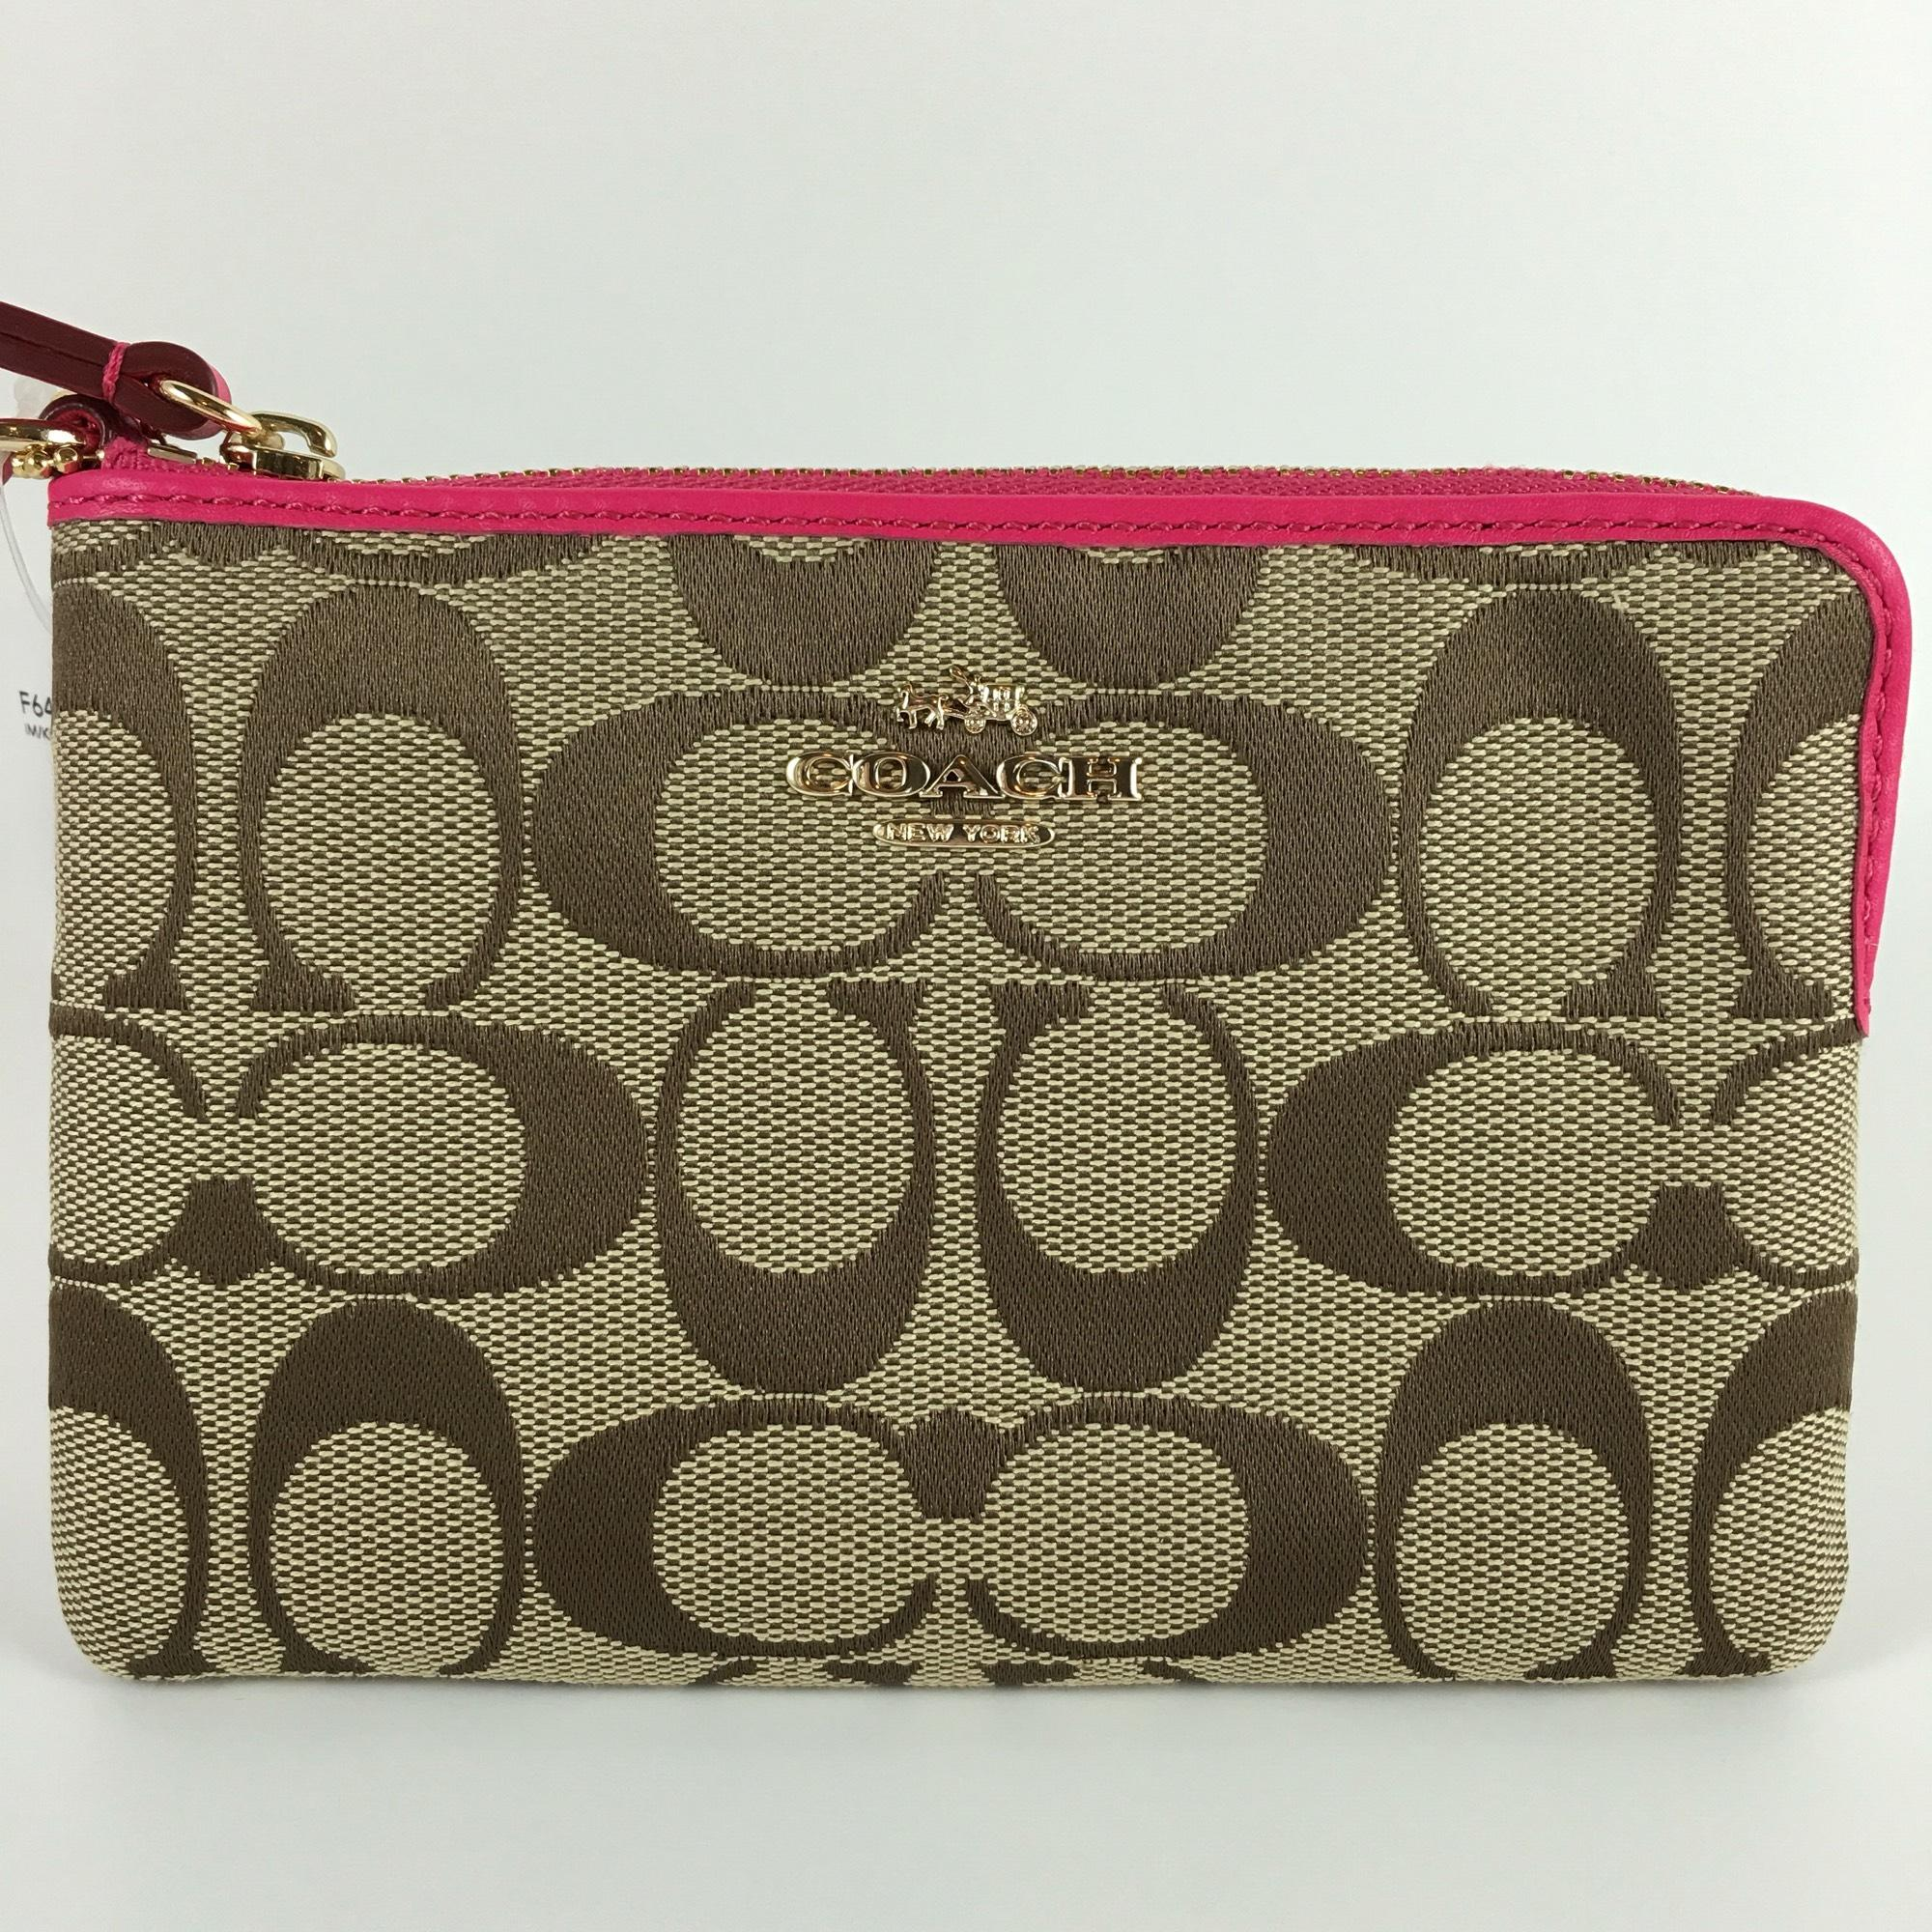 c80a6bad5240 ... free shipping coach signature f64375 wallet wristlet in khaki pink ruby  b01c4 21c37